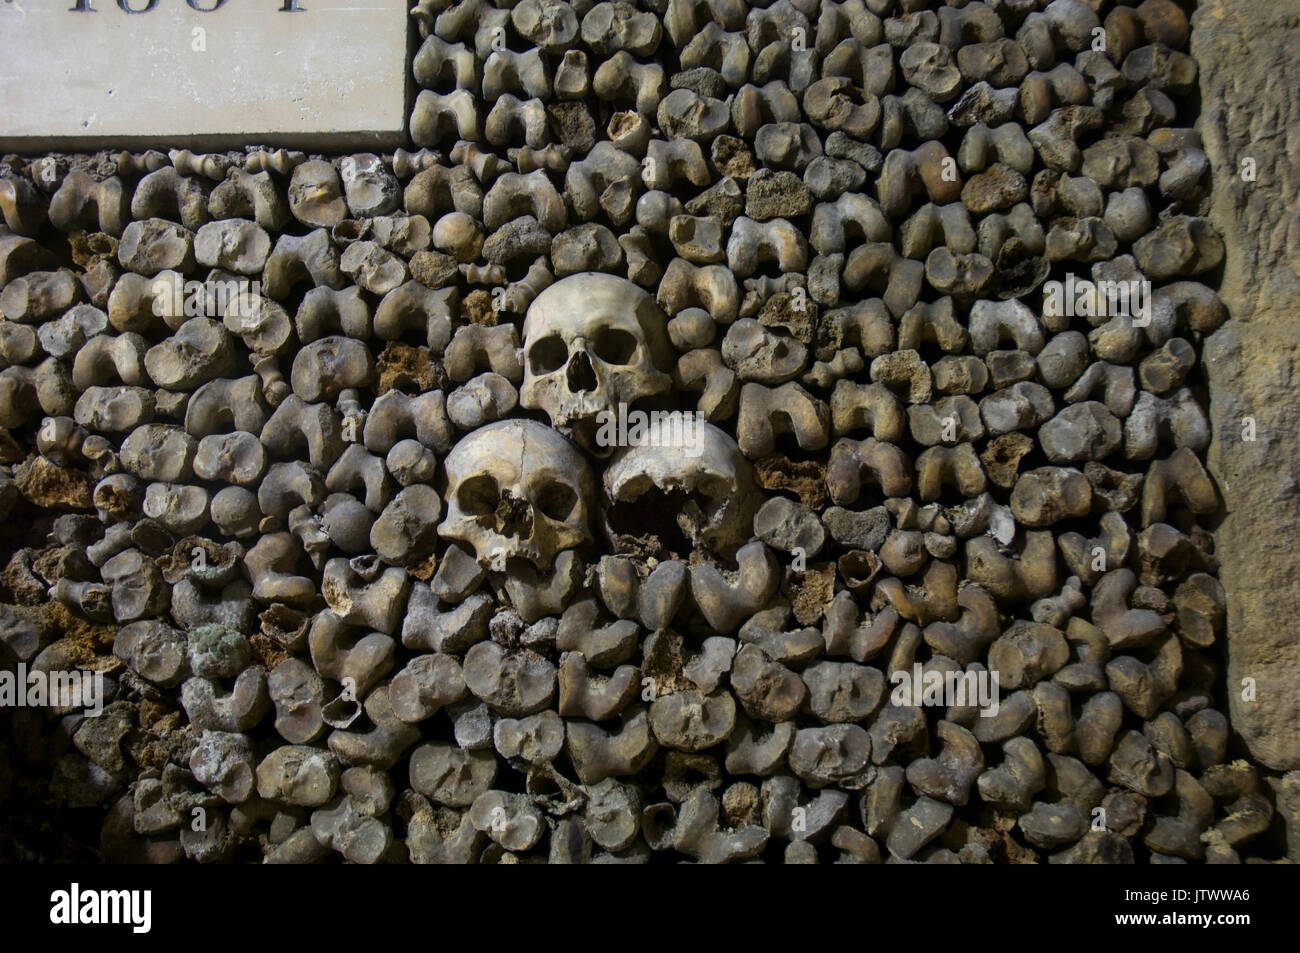 skulls-and-bones-decorating-the-walls-of